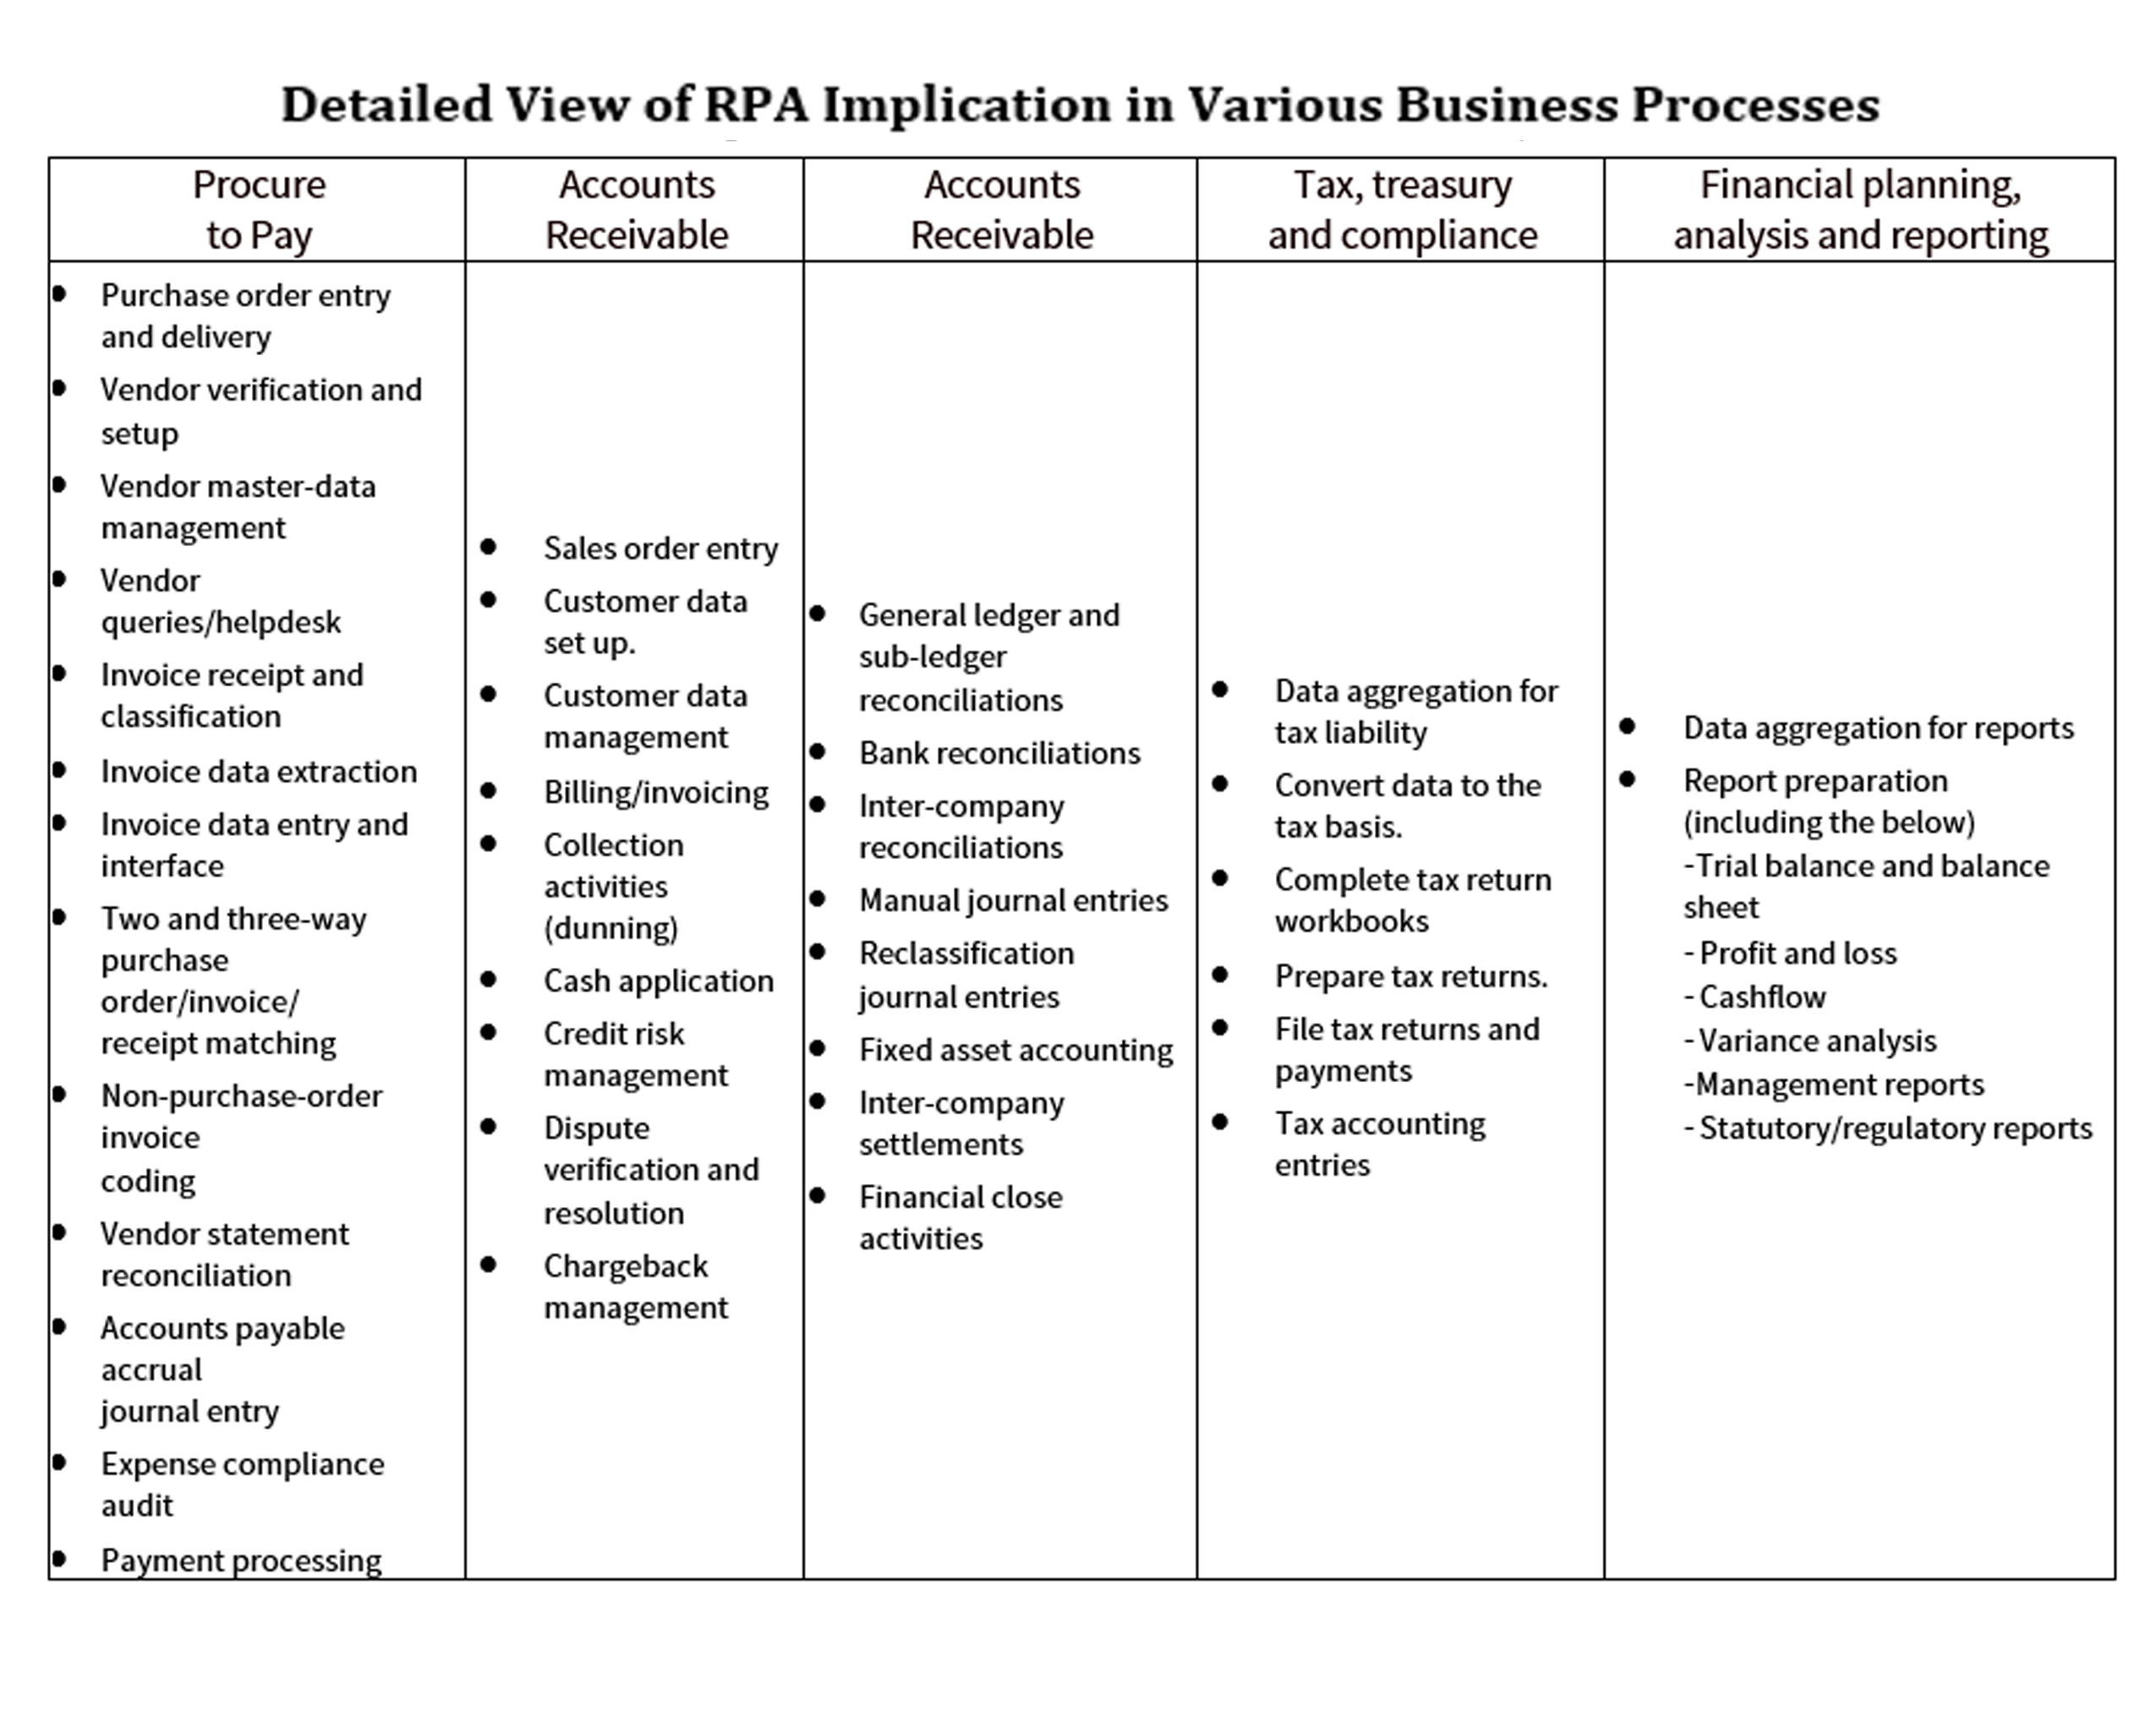 Detailed list of RPA automation of Finance and Accounting activities